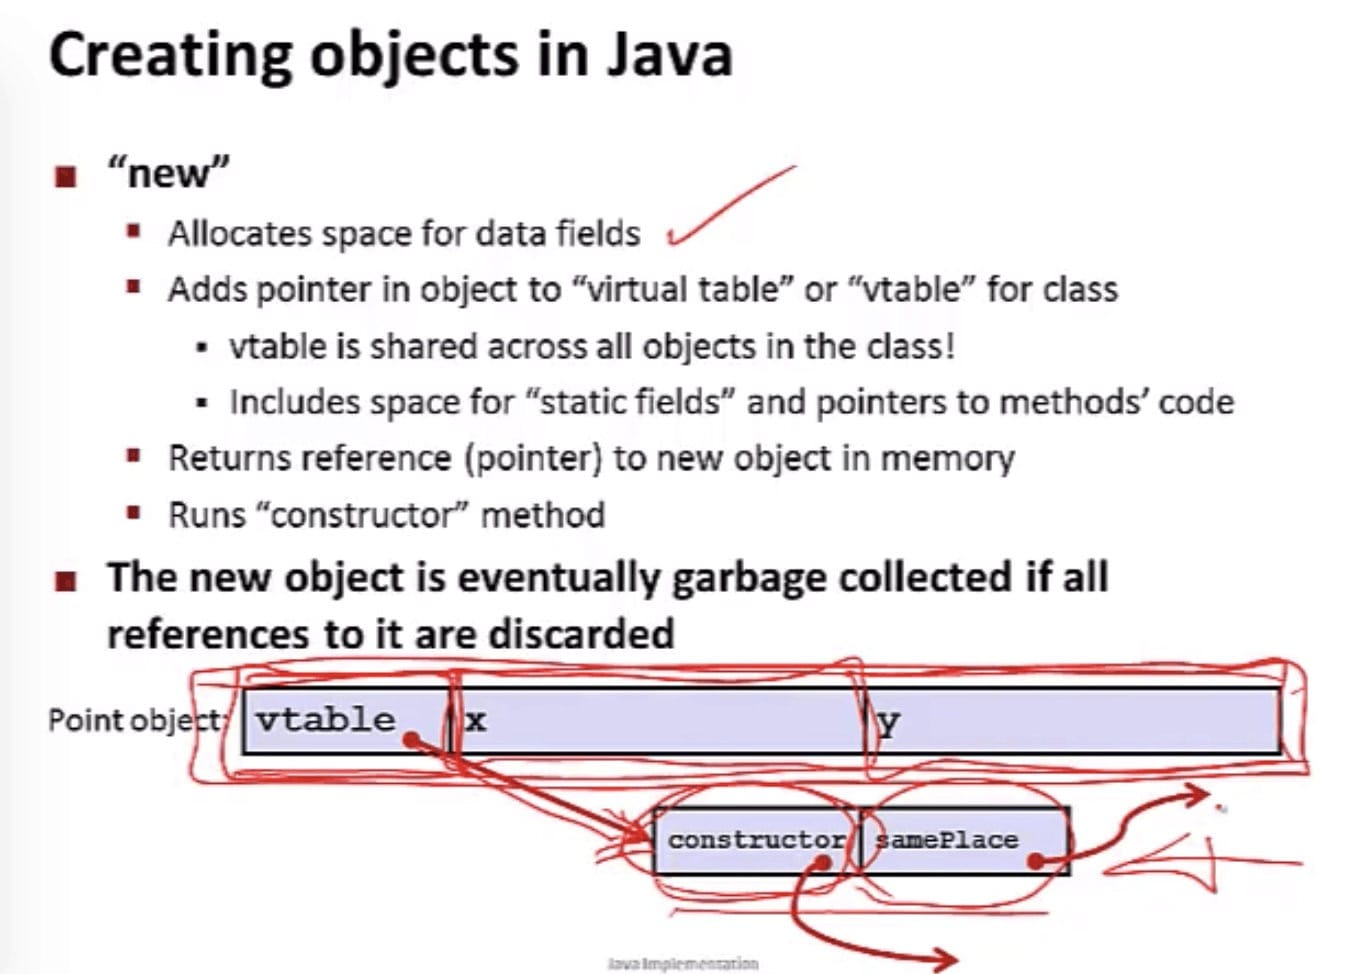 Creating objects in Java (CSE 351 - Java vs. C, Video 2: Implementation)